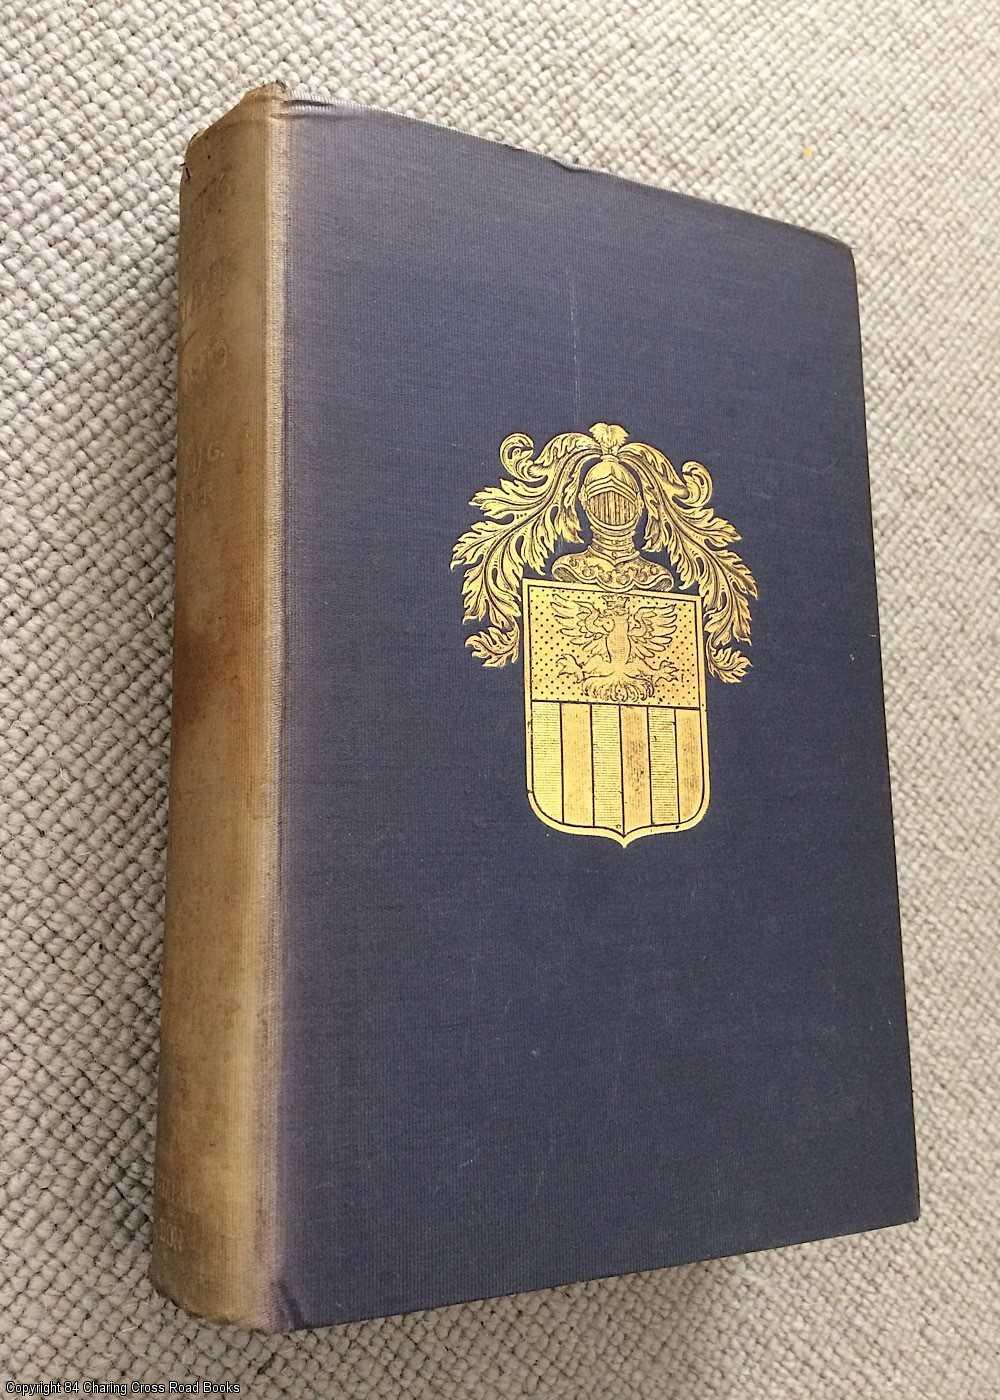 GARDNER, EDMUND - The King of Court Poets. A Study of the Work Life and Times of Lodovico Ariosto